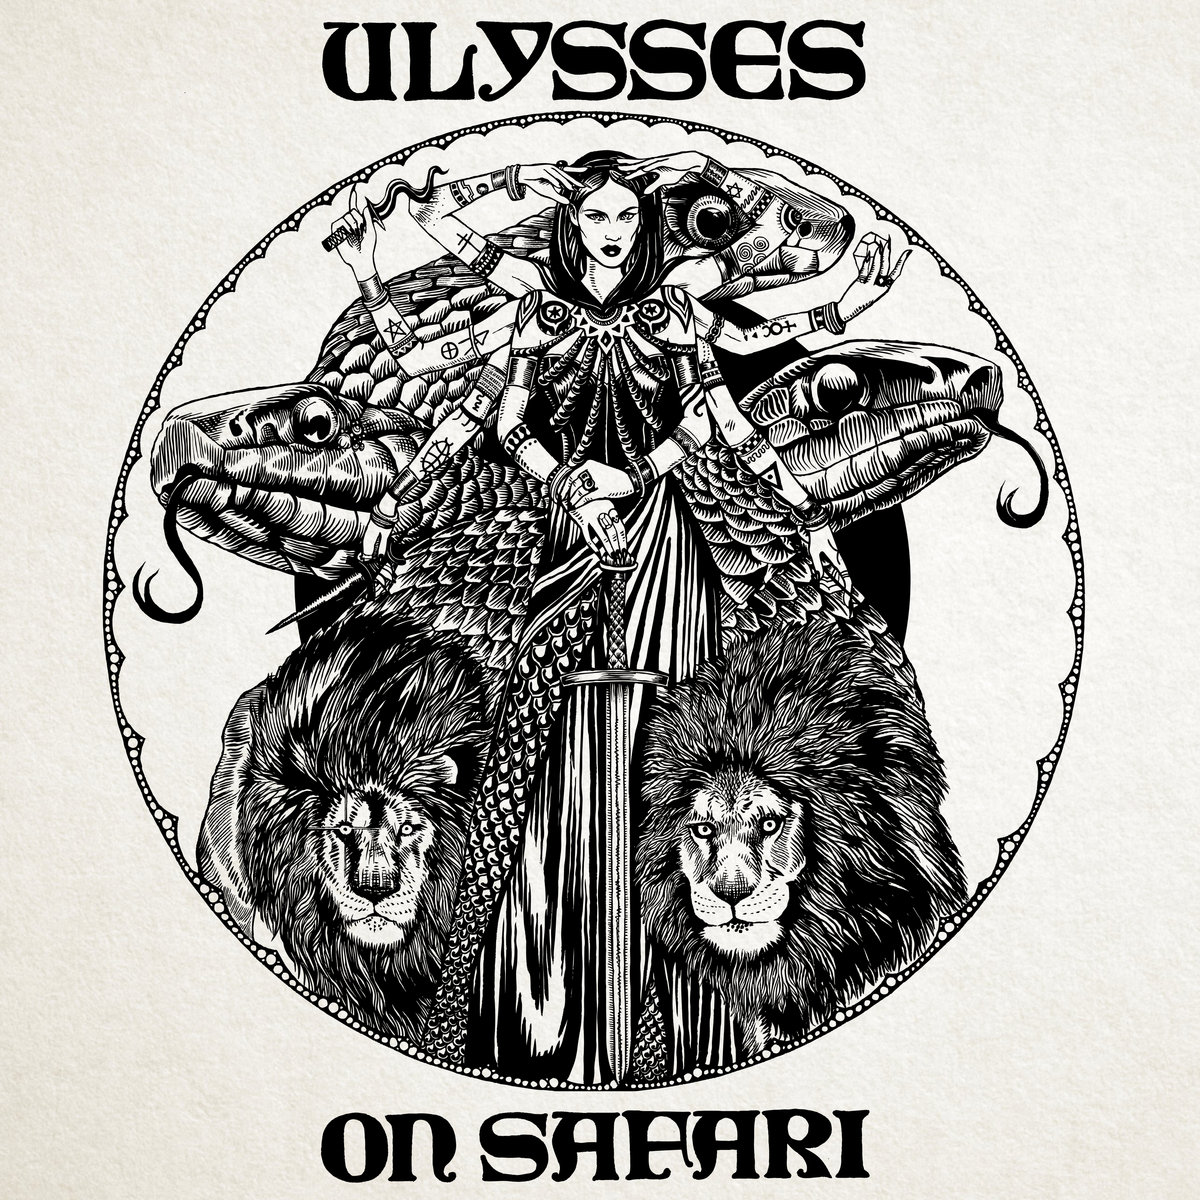 On Safari | Ulysses